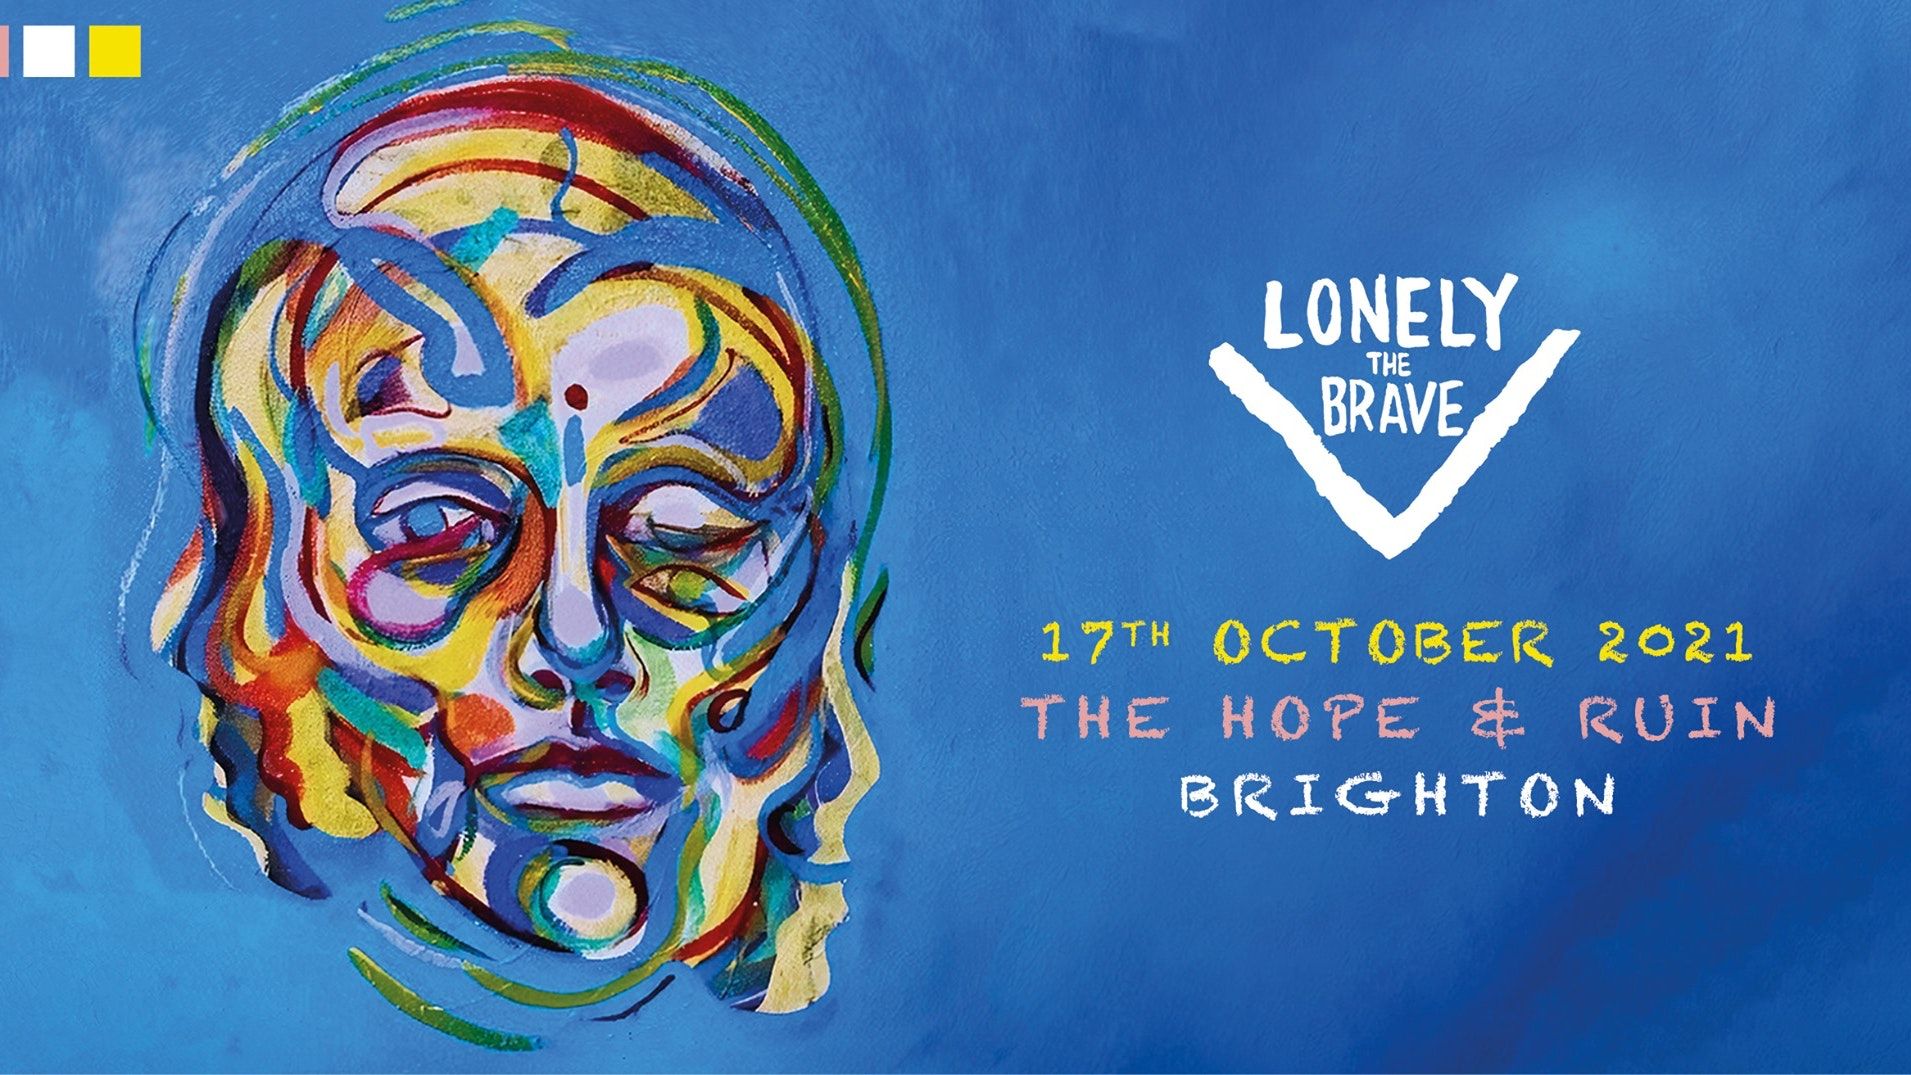 Lonely The Brave *RESCHEDULED*